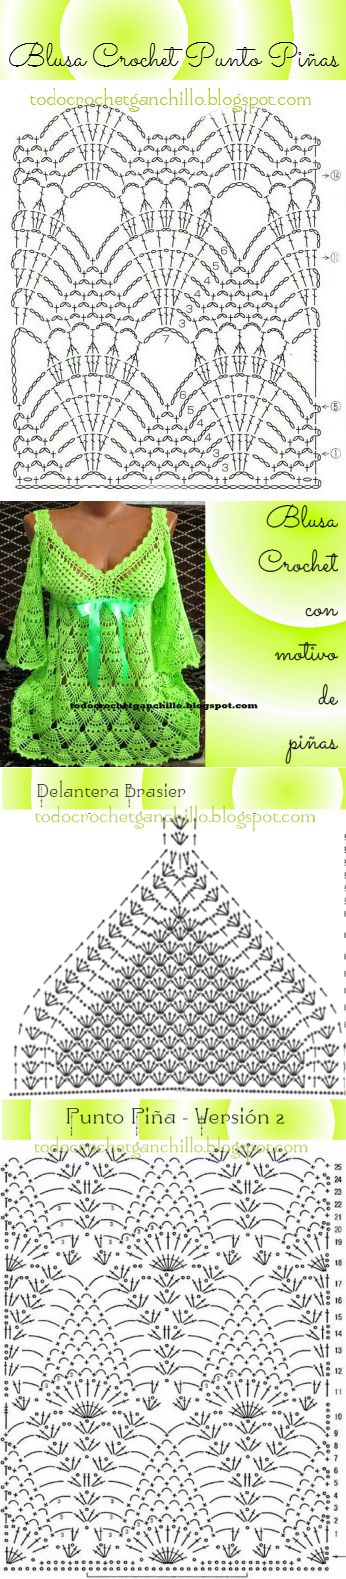 366 best Crochet - Indumentaria images on Pinterest | Crochet ...